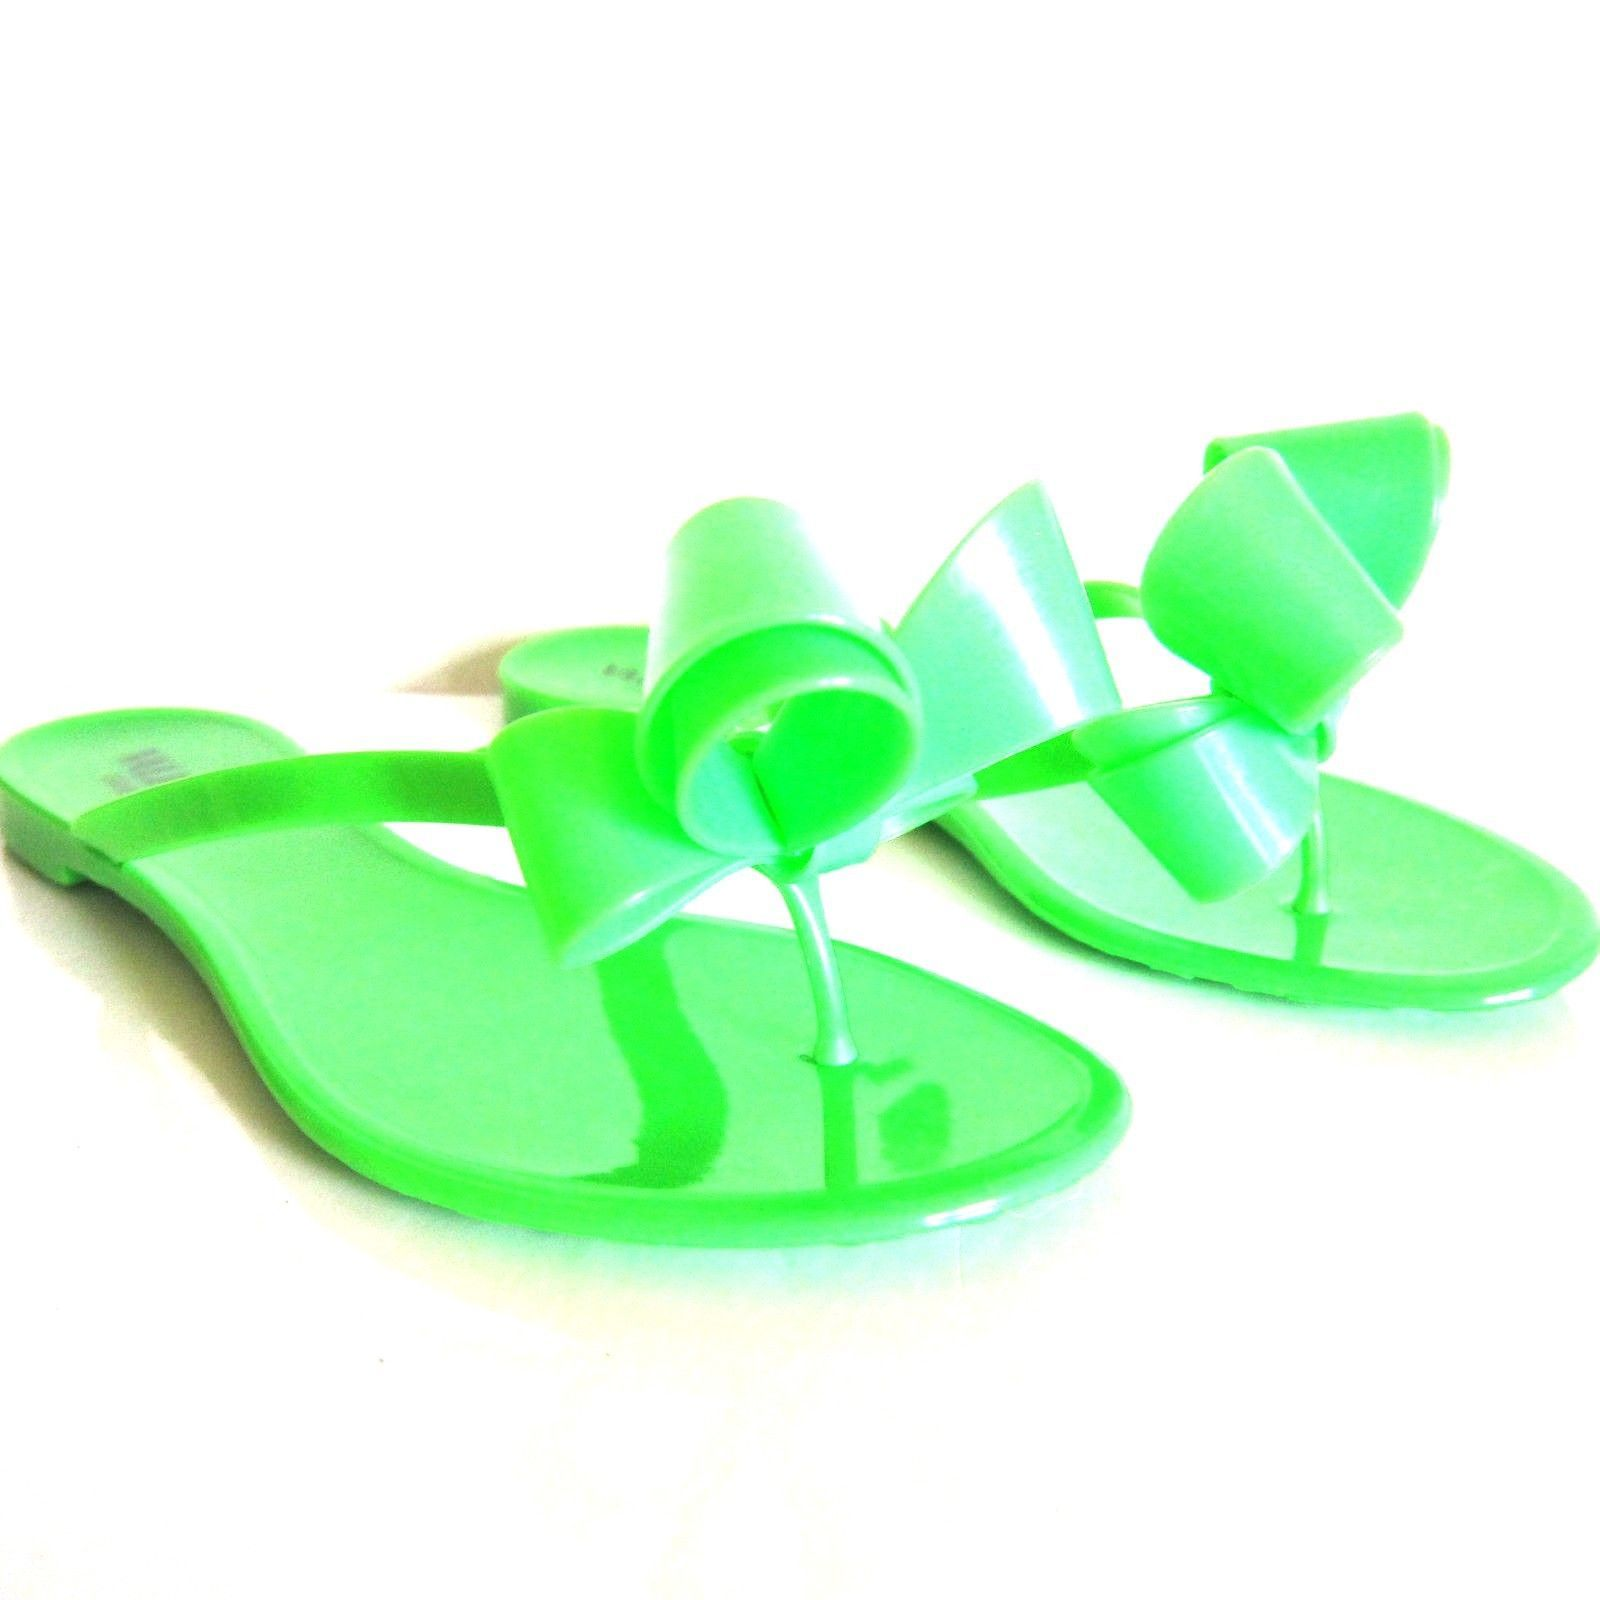 600fc5672 S l1600. S l1600. F-841148 New Valentino Neon Green Jelly Sandals with Bow  Marked 36 US 6 ...